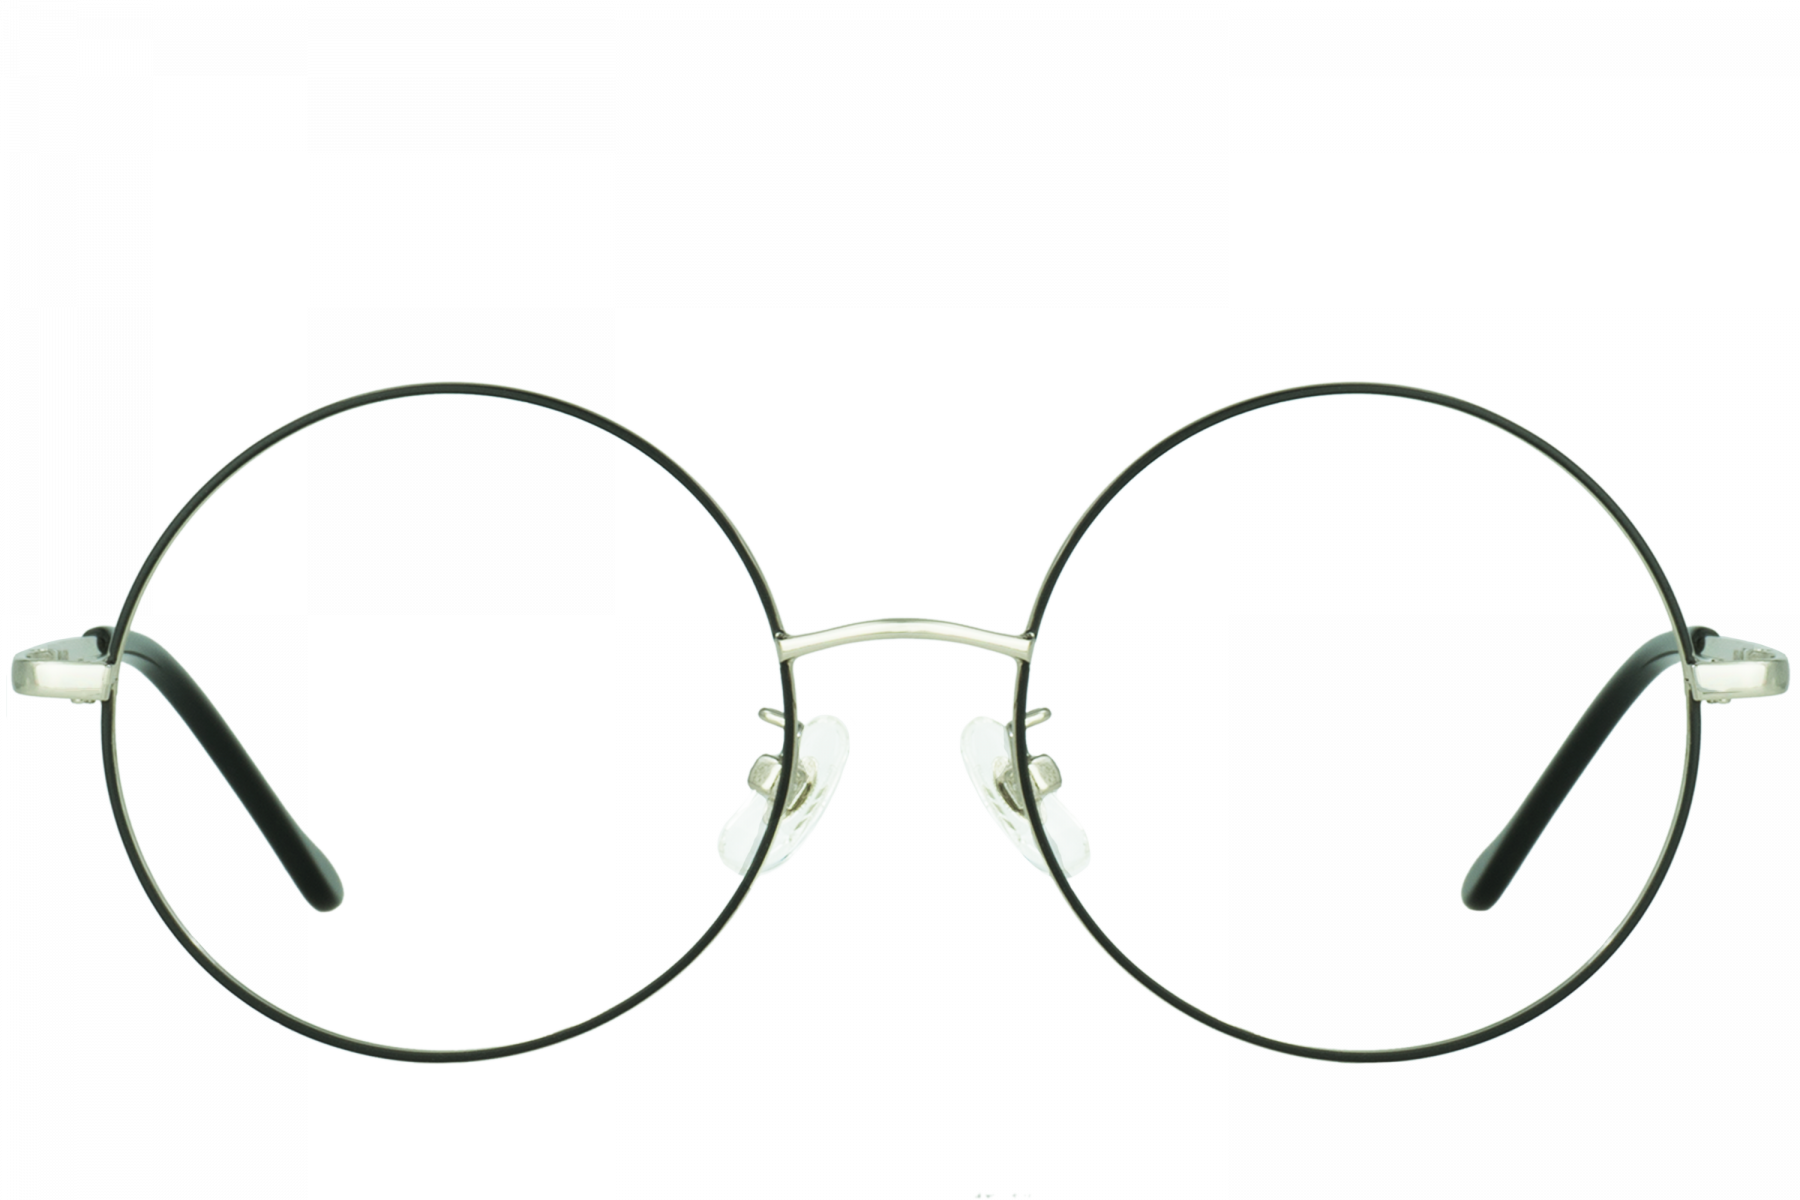 Circle sunglasses png. Glasses images free download